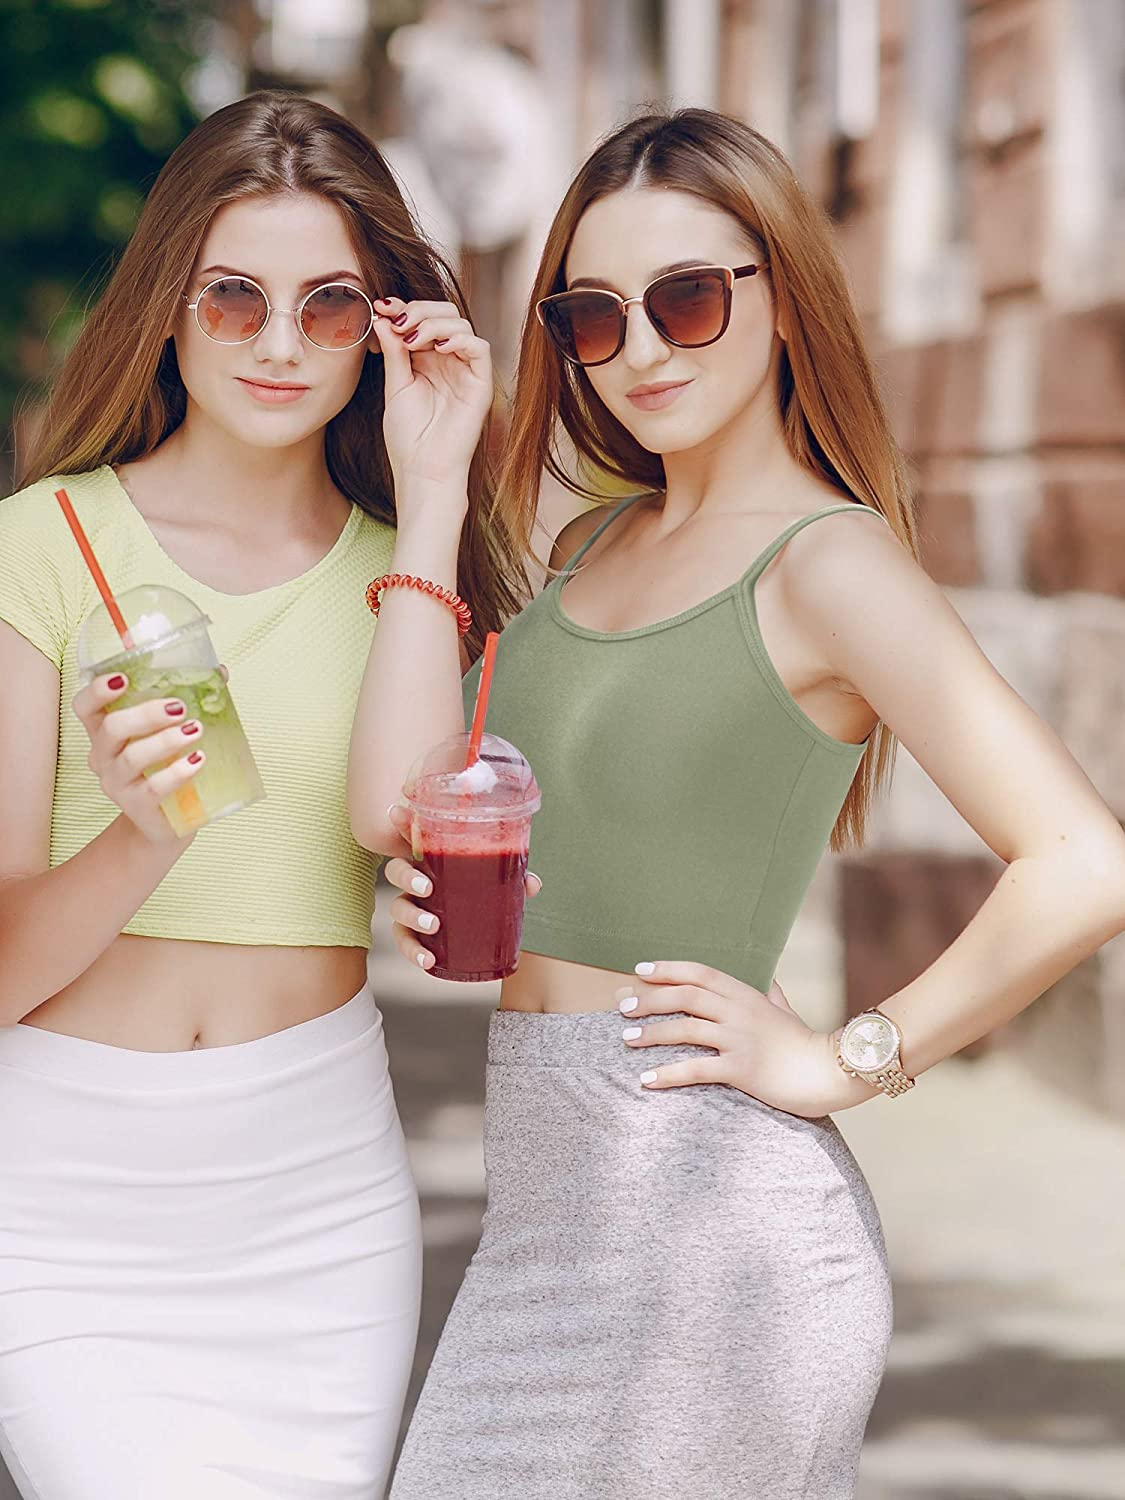 6 Pieces Women Crop Cami Top Spaghetti Strap Tank Top Racerback Sleeveless Camisole Tops for Sports Yoga